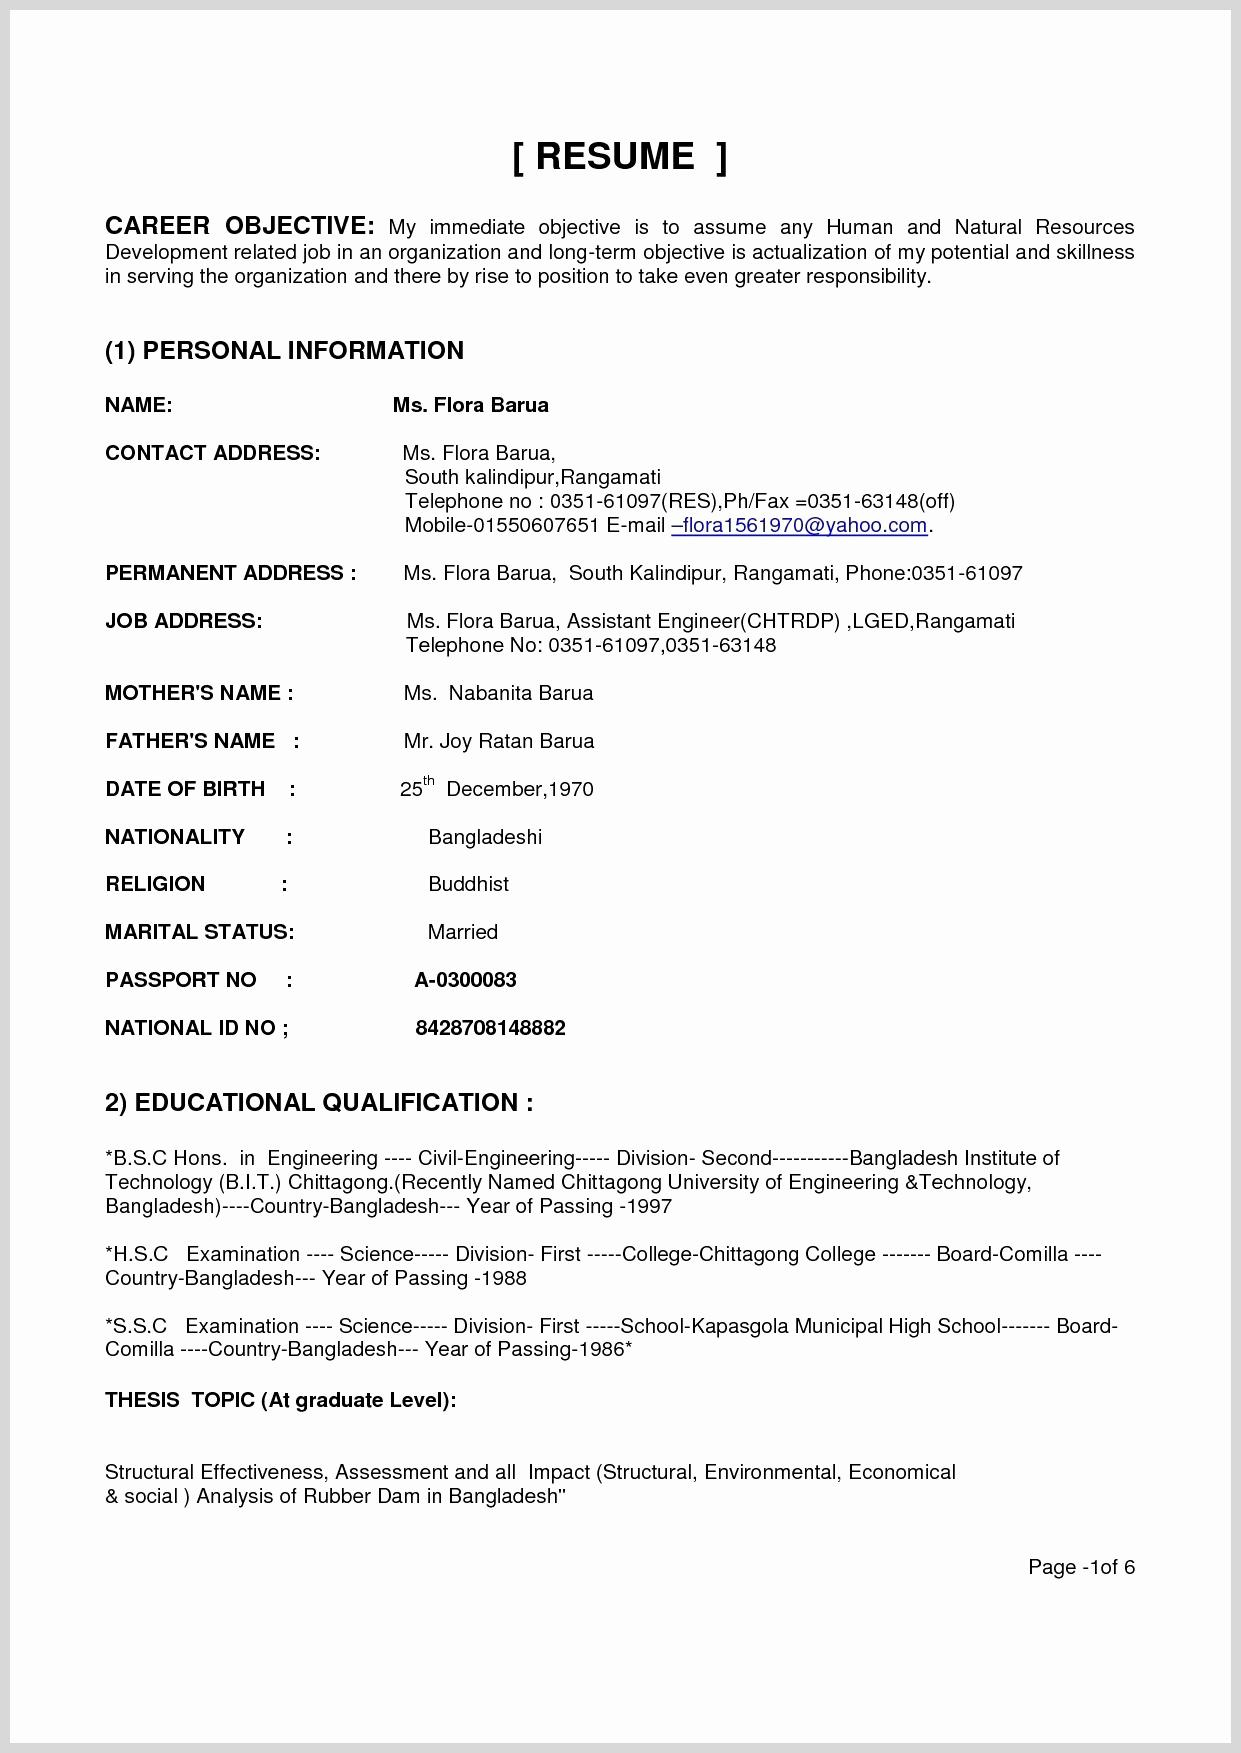 Ut Sample Resume - 57 Good Civil Engineering Resume Templates Occupylondonsos